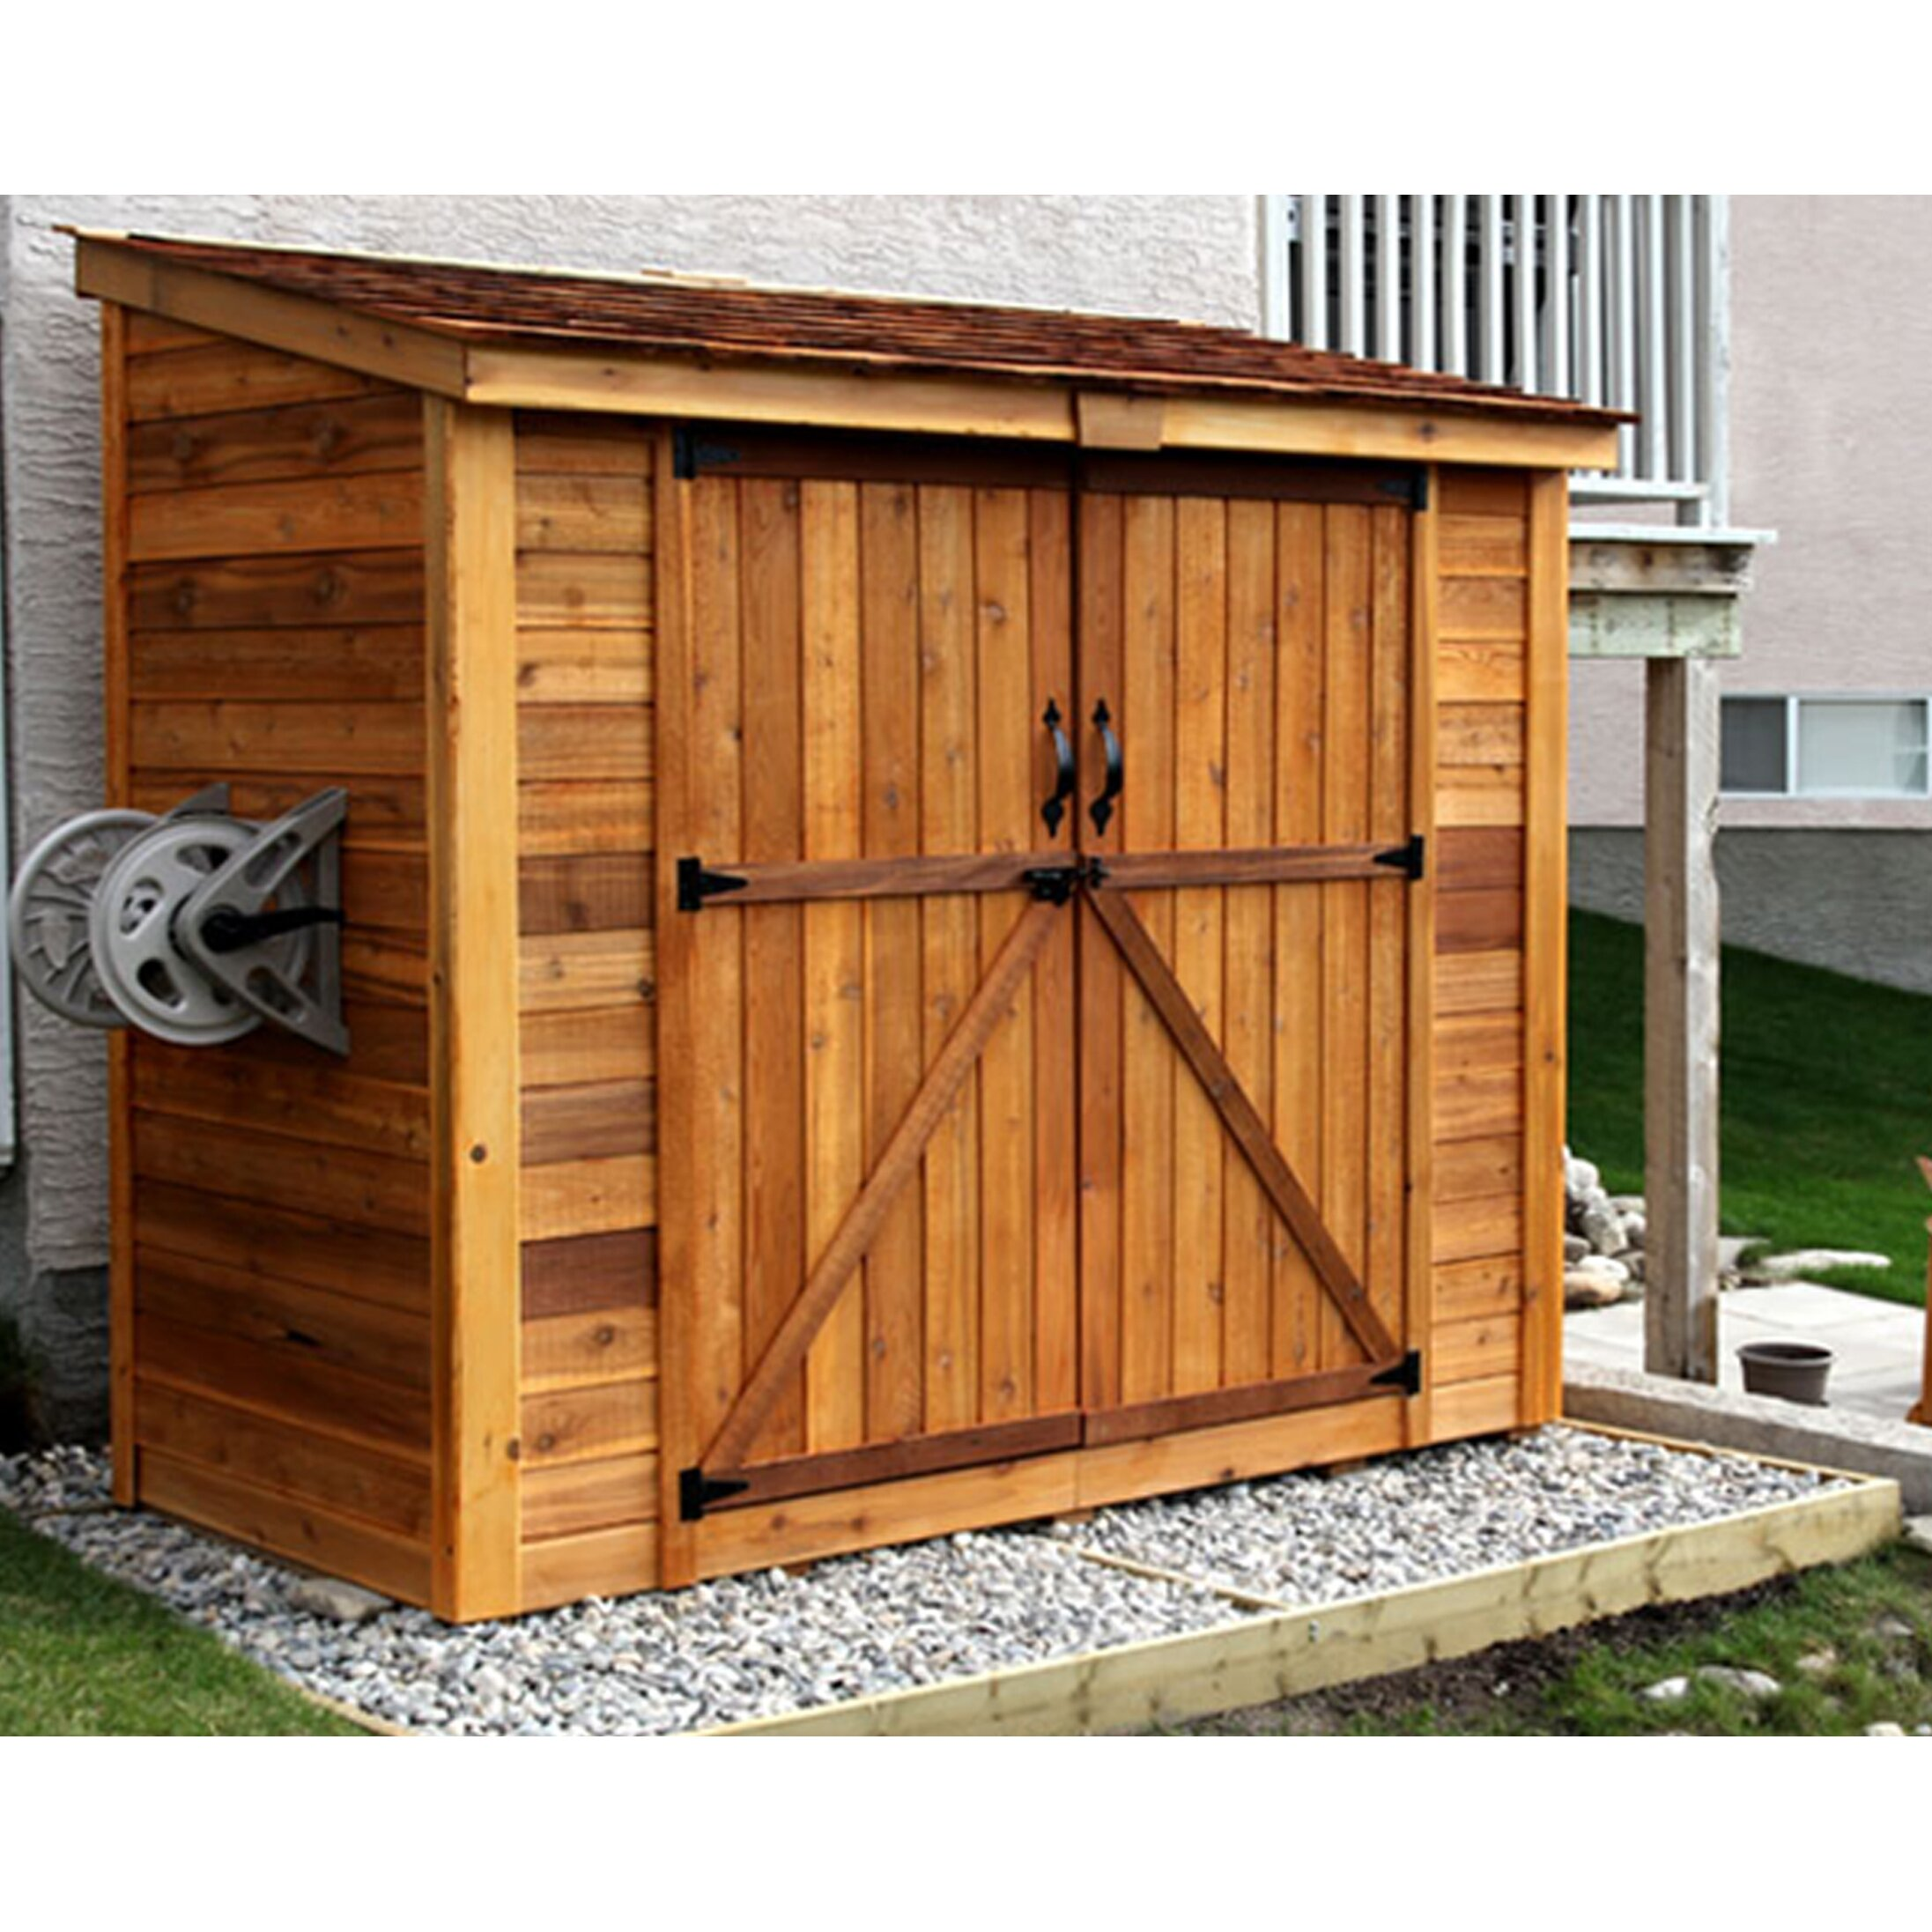 Outdoor Living Today SpaceSaver 8 Ft W X 4 Ft D Garden Shed With Double Doo